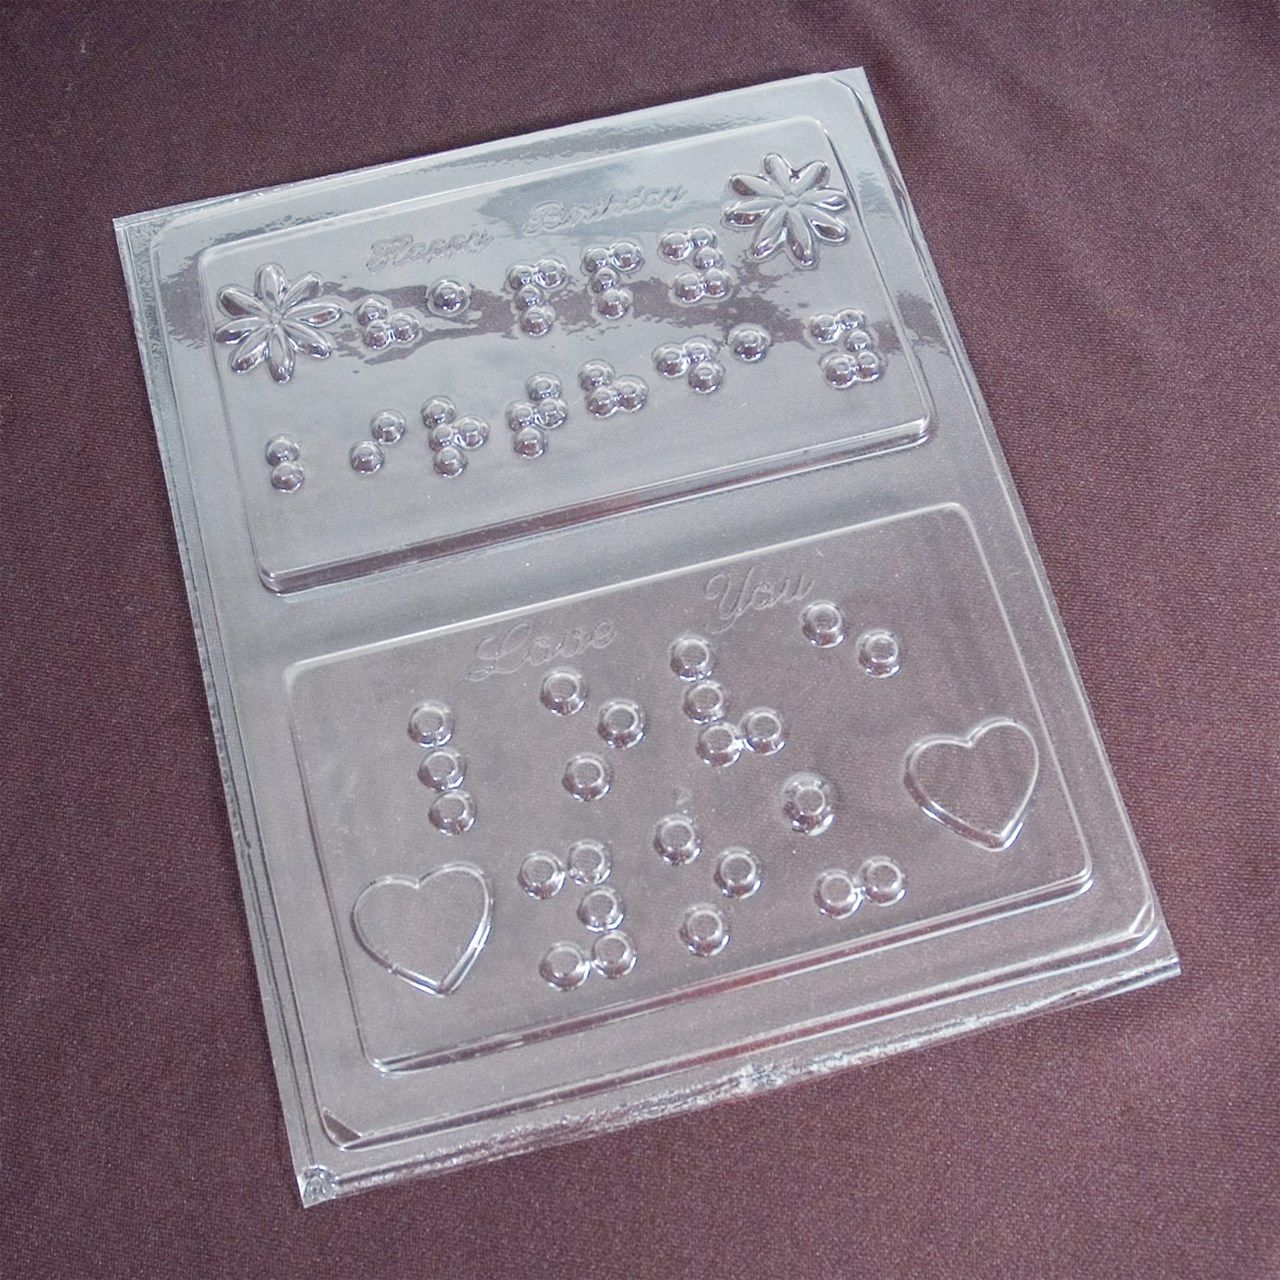 Braille Card Chocolate Candy Mold- Happy Birthday And Love